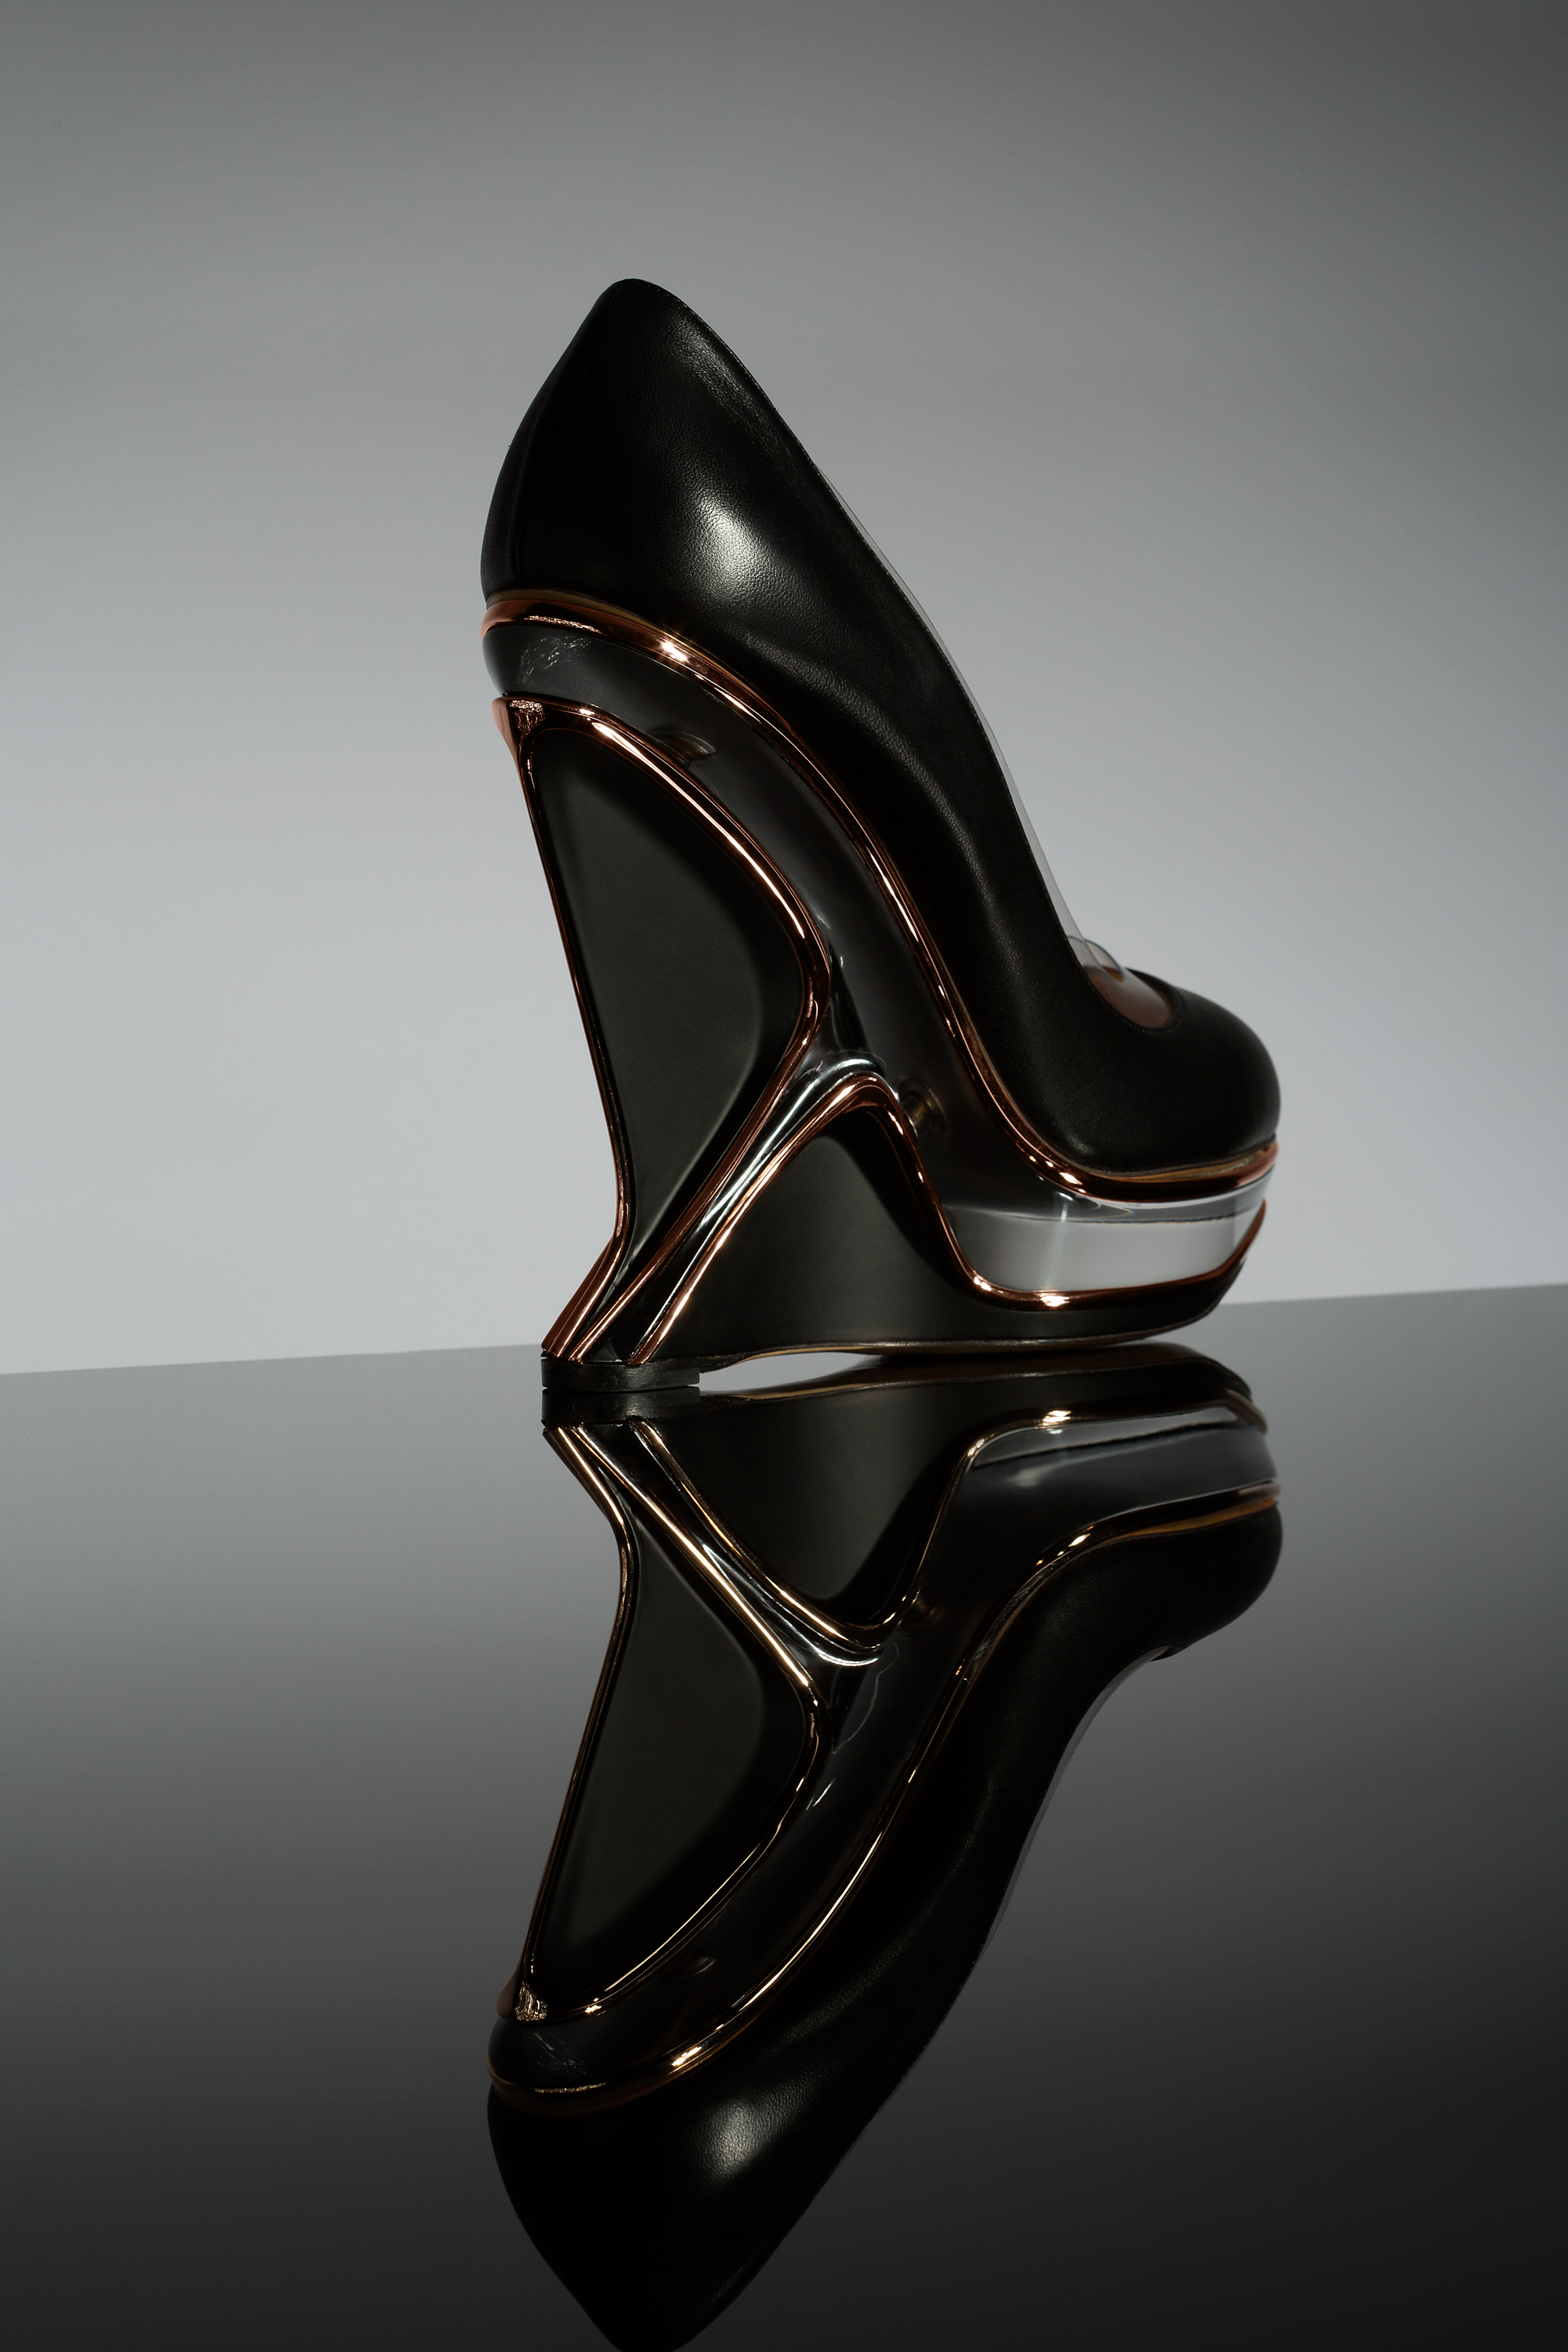 Hadid zaha designs shoes recommendations to wear for spring in 2019